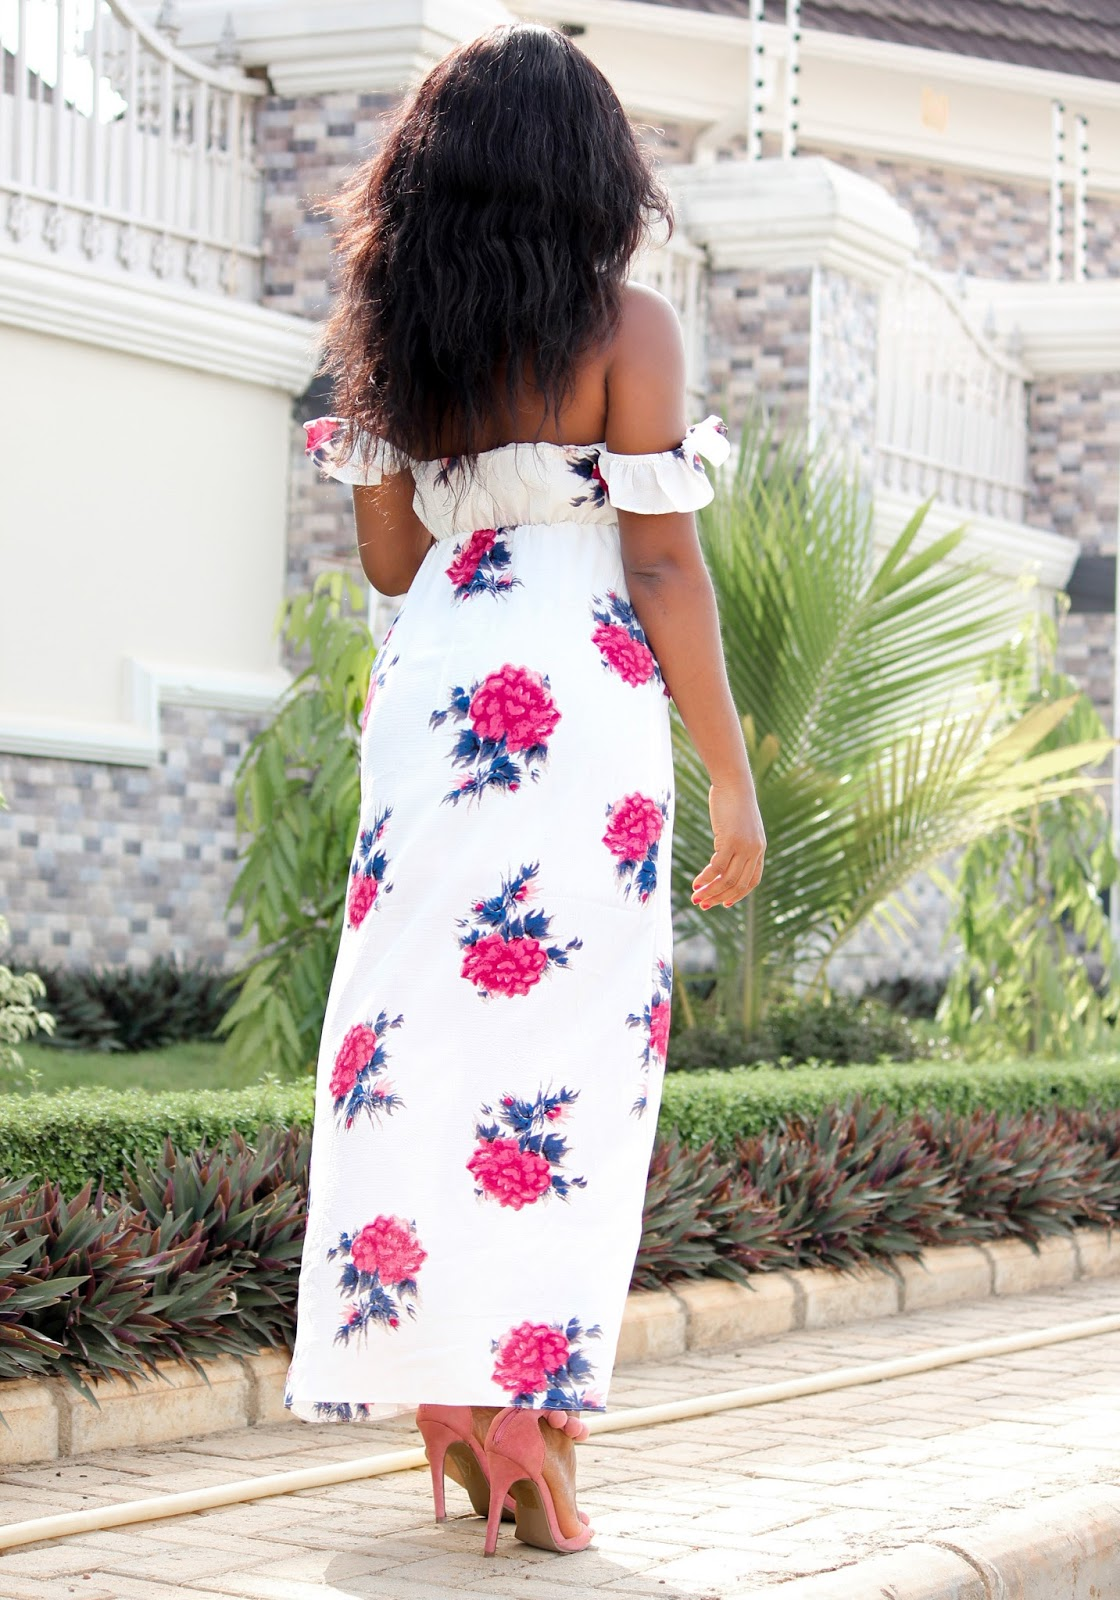 FLORAL PRINT MAXI - Floral Print Maxi Dress from  Zaful with Boohoo Sandals